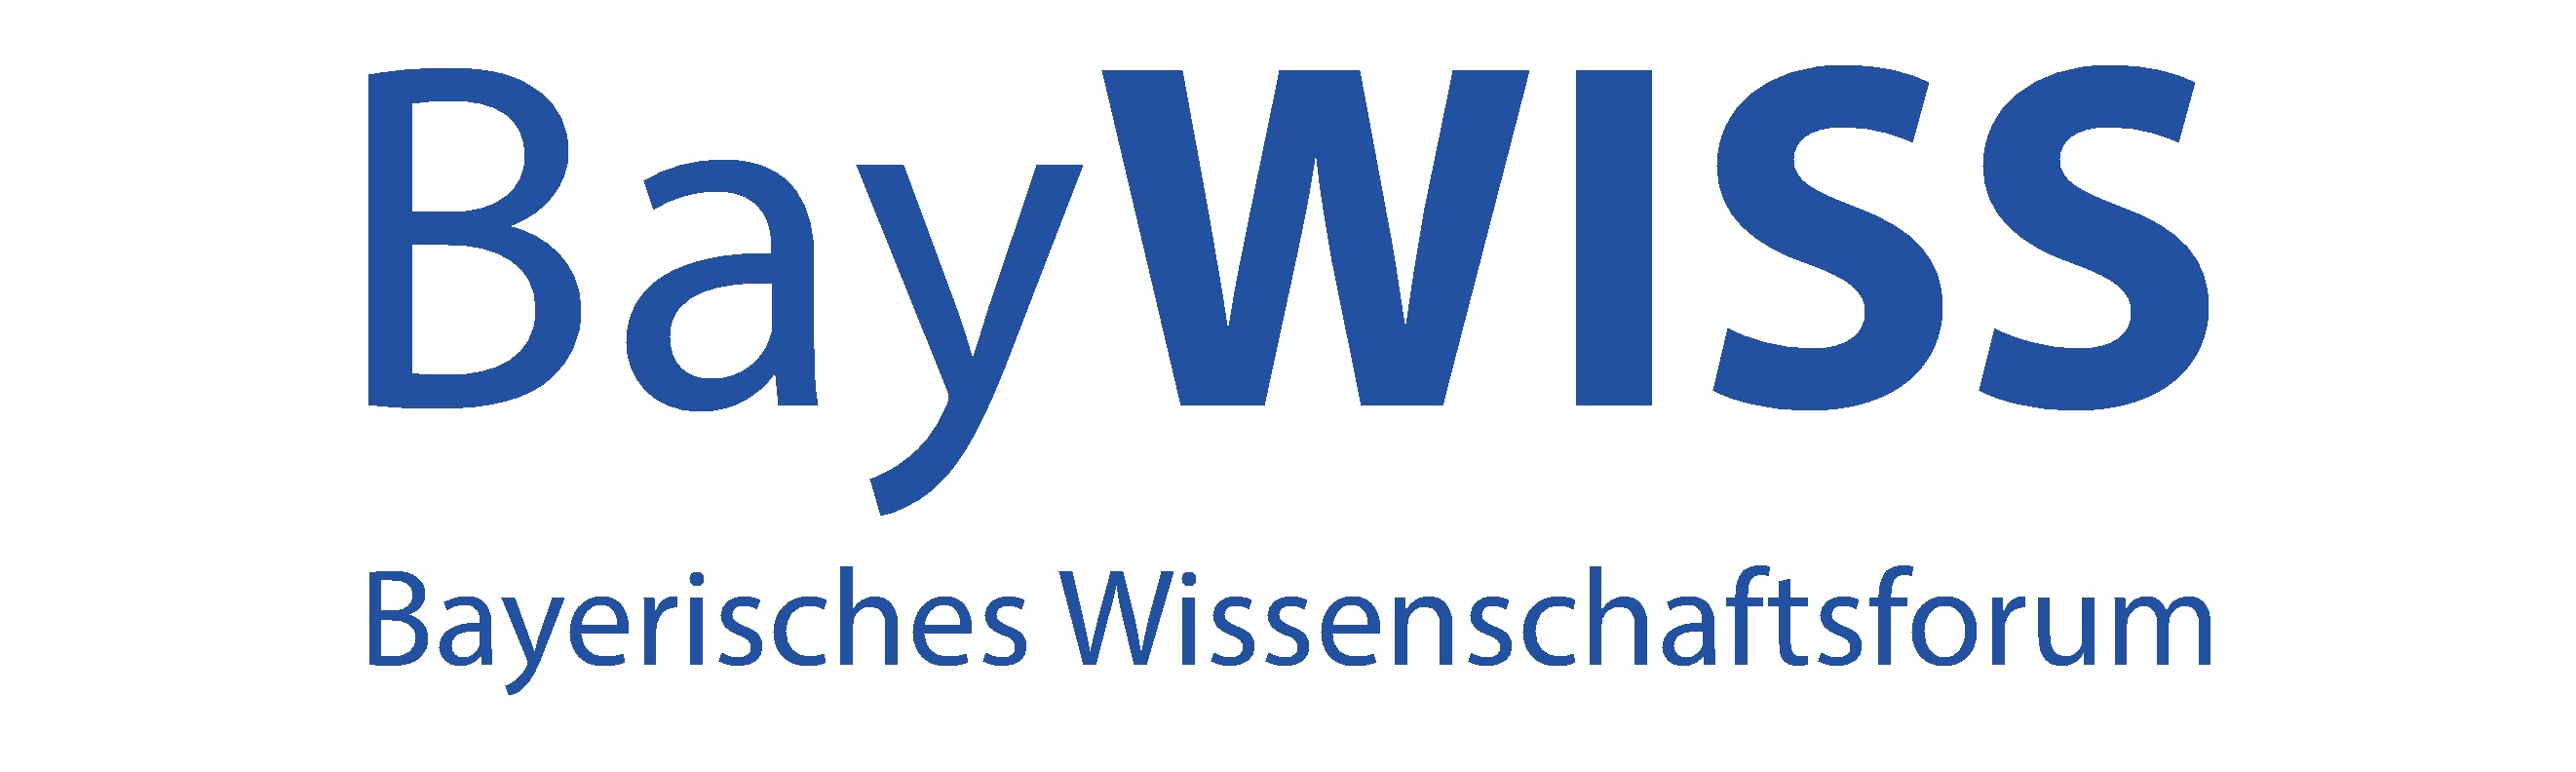 Logo of the bavarian research forum (BayWISS)